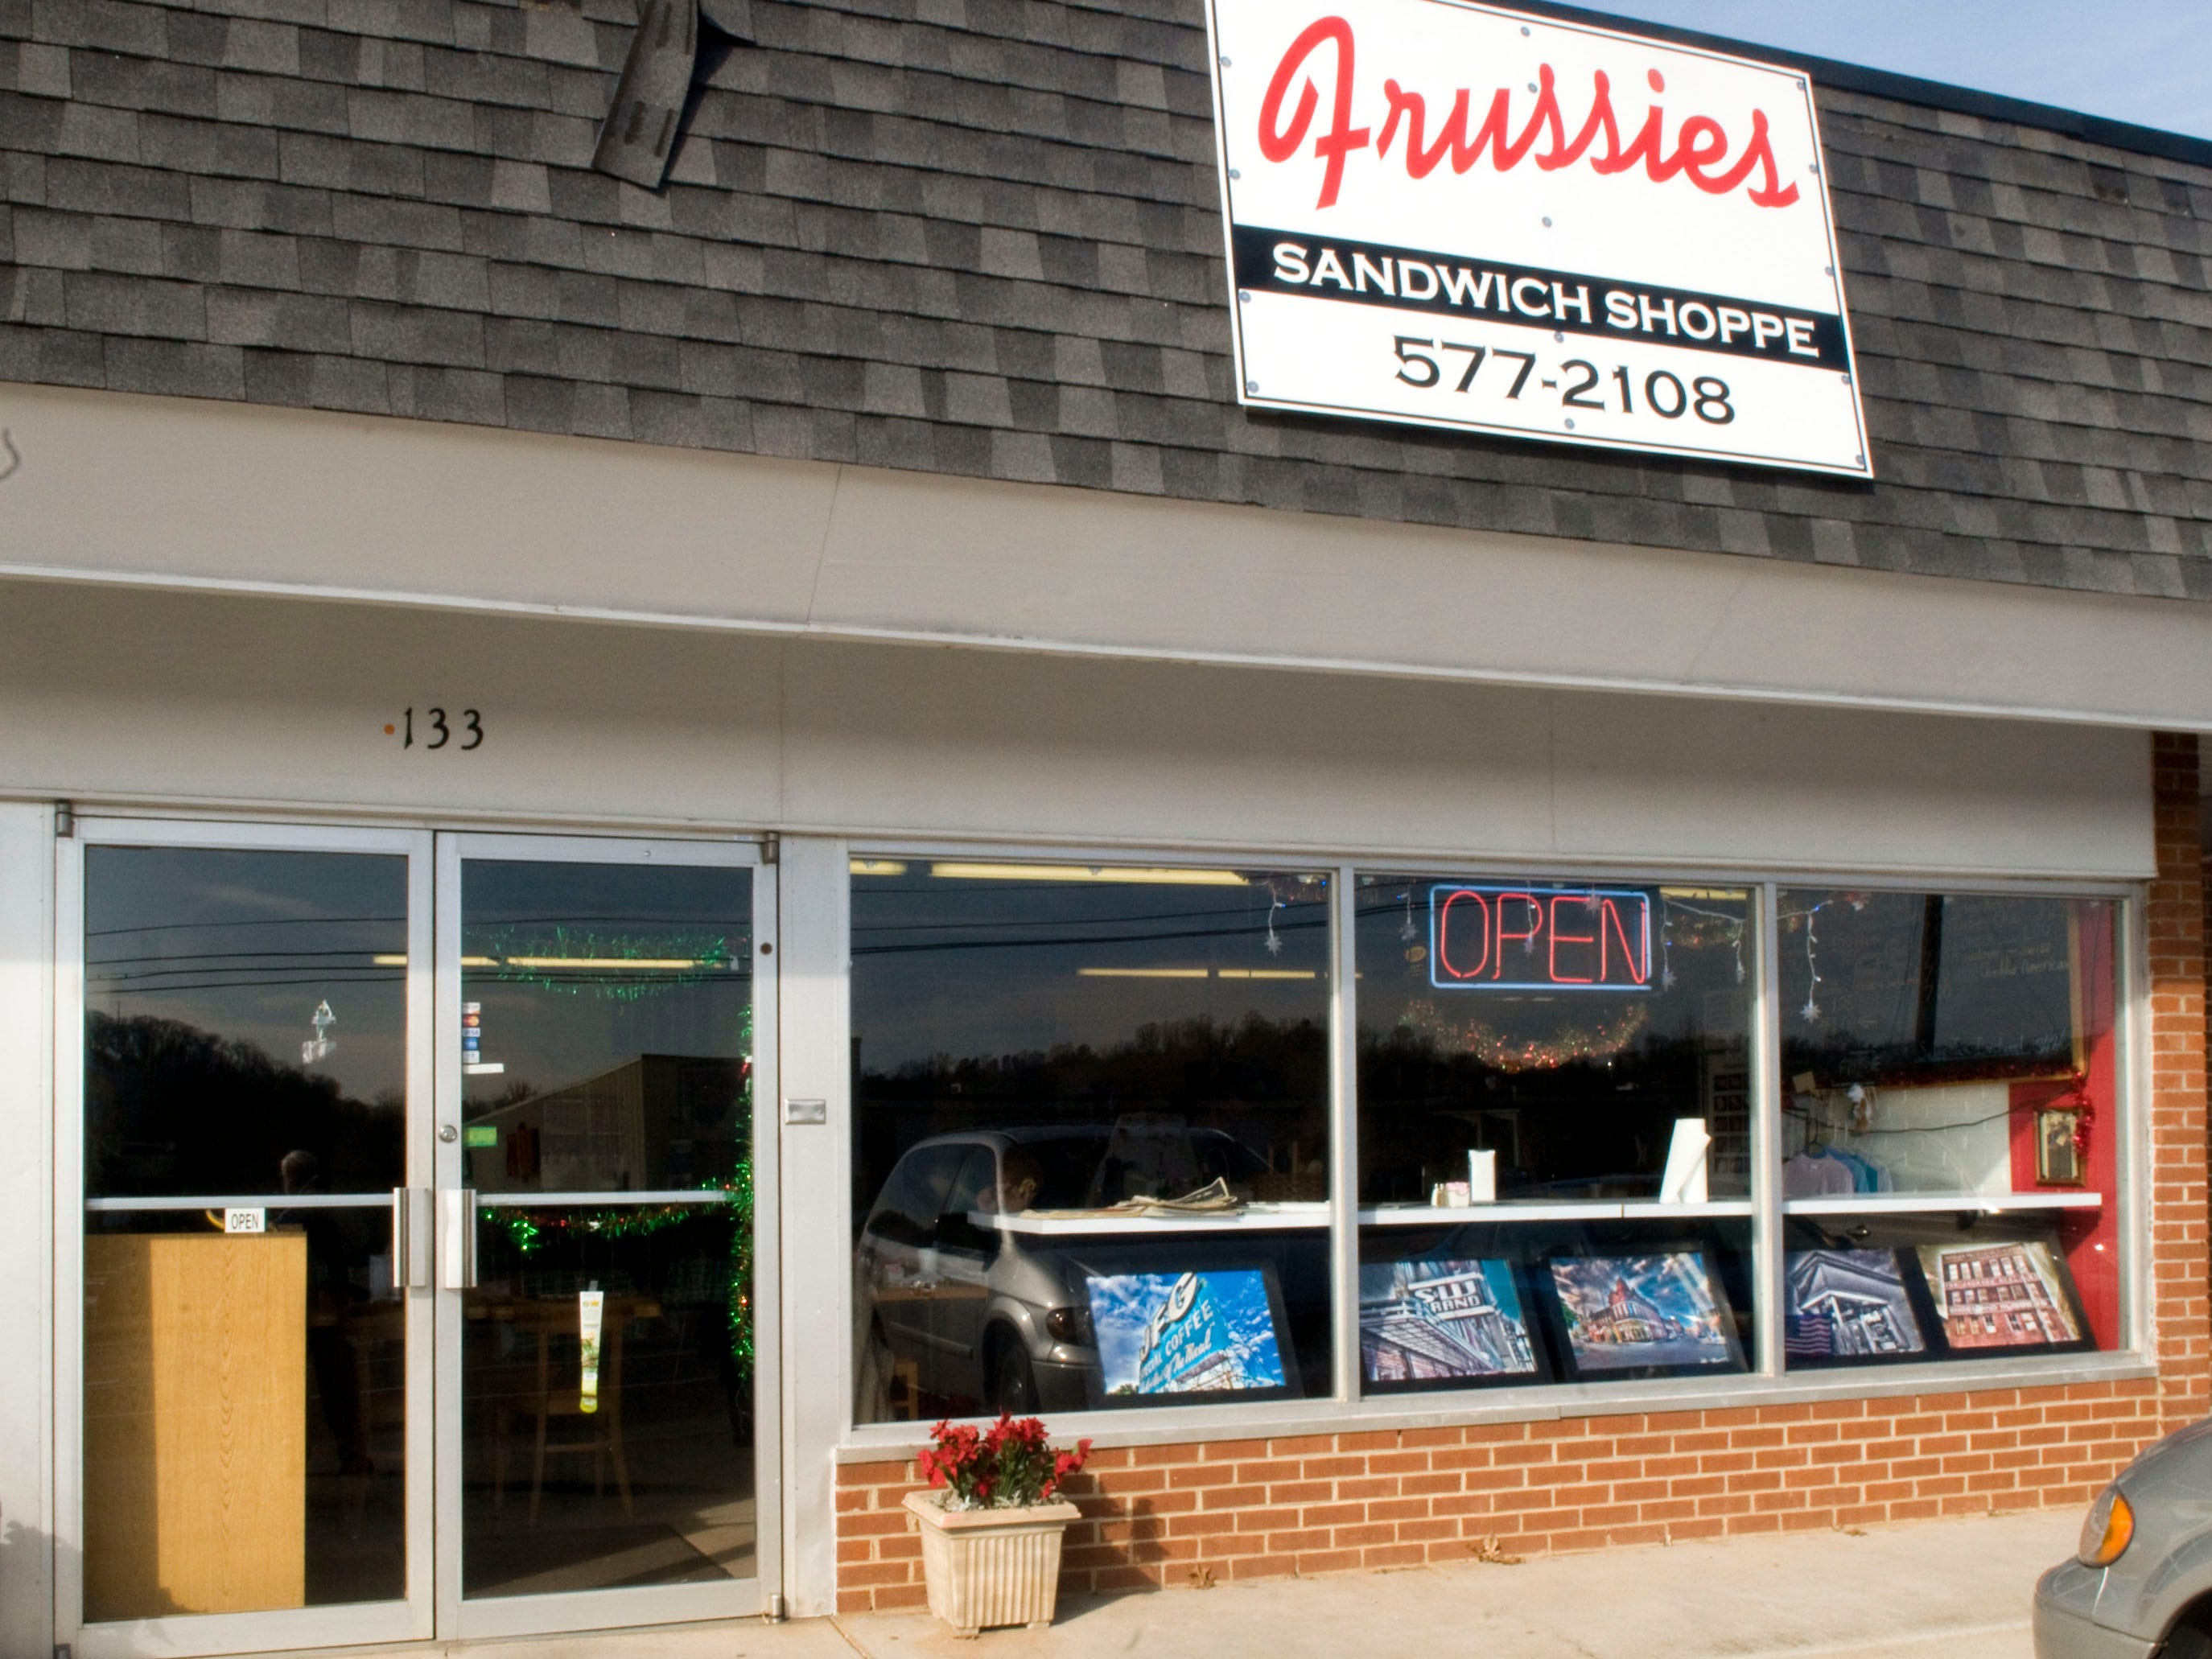 Frussie's sandwich shop on Moody Ave in South Knoxville in 2010.